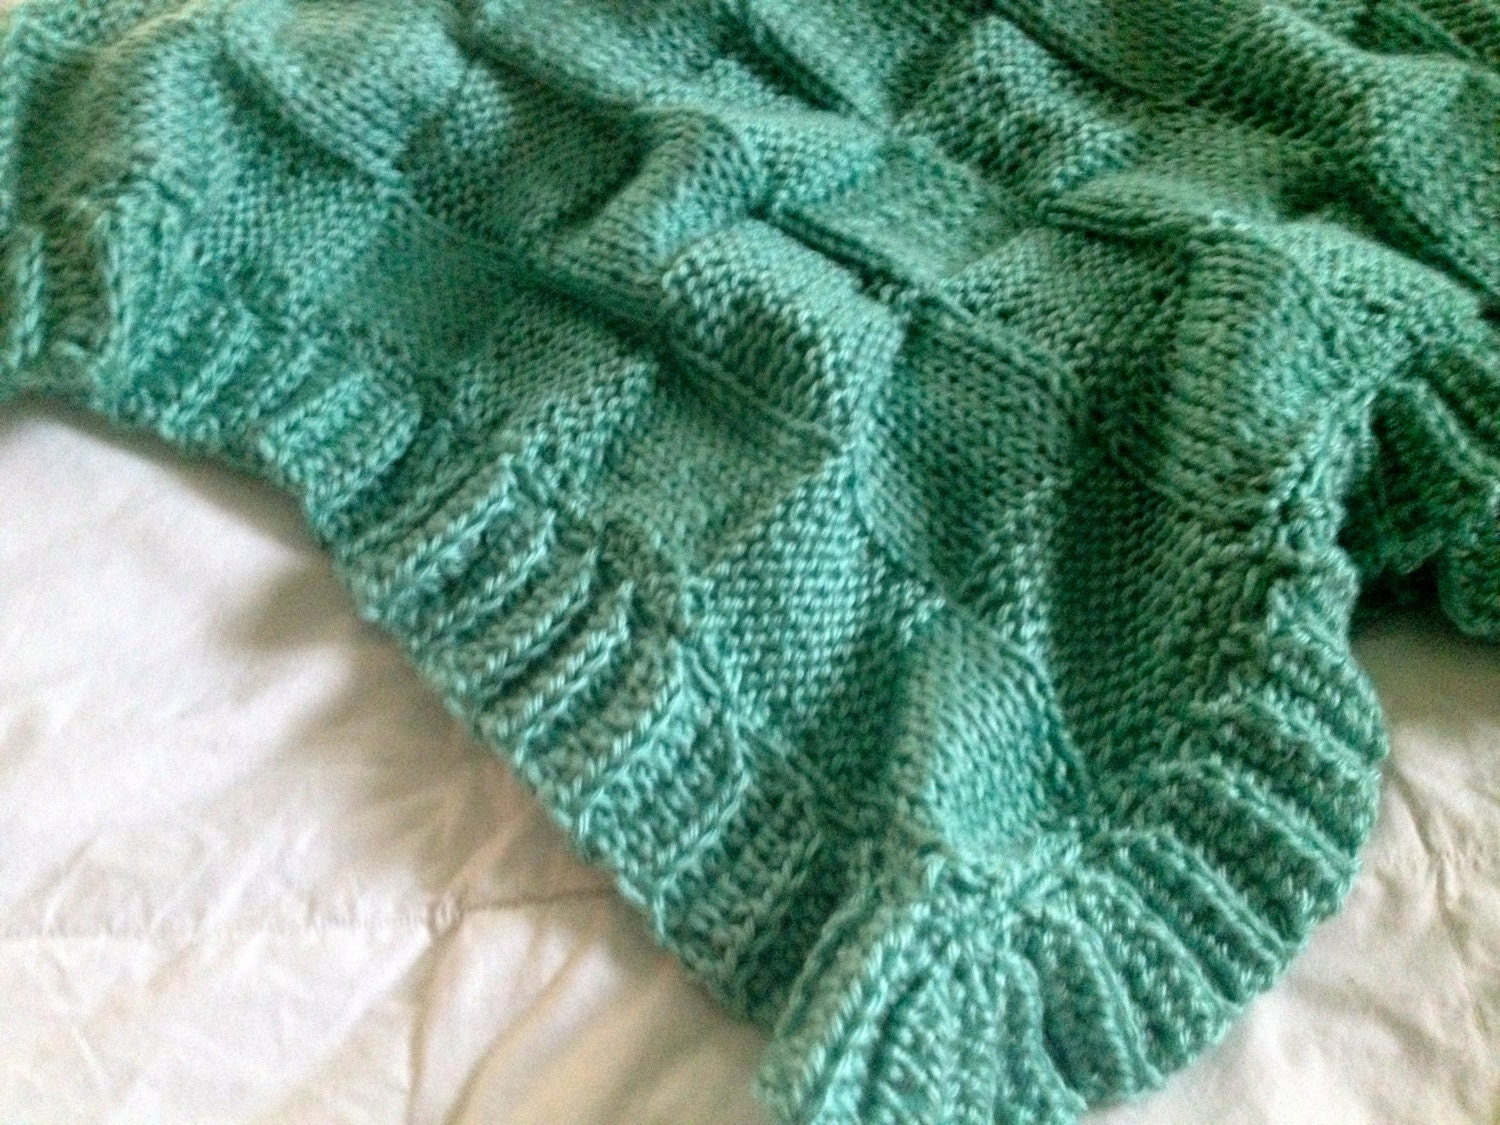 Hand Knitting Patterns For Babies : Hand knit Baby Blanket in Block pattern with hand crocheted